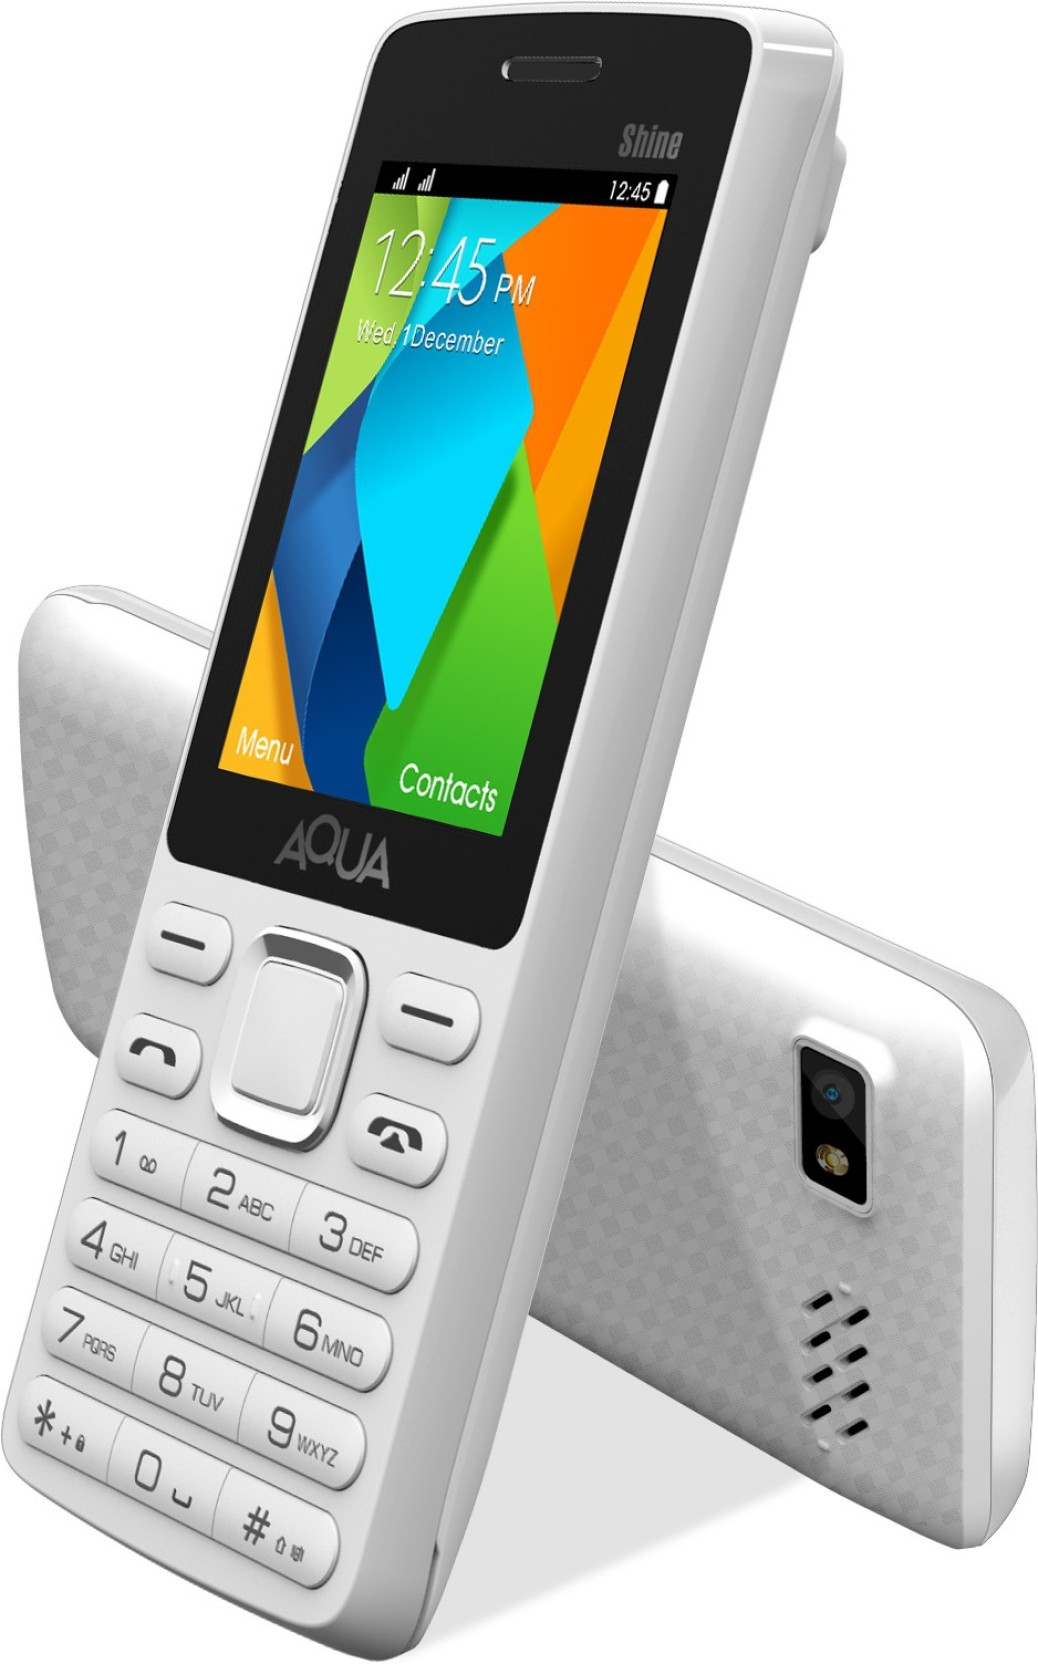 Aqua Shine Dual Sim Basic Mobile Phone Online At Best Price Only Lcd Touchscreen Oppo U705 U7015 White Home